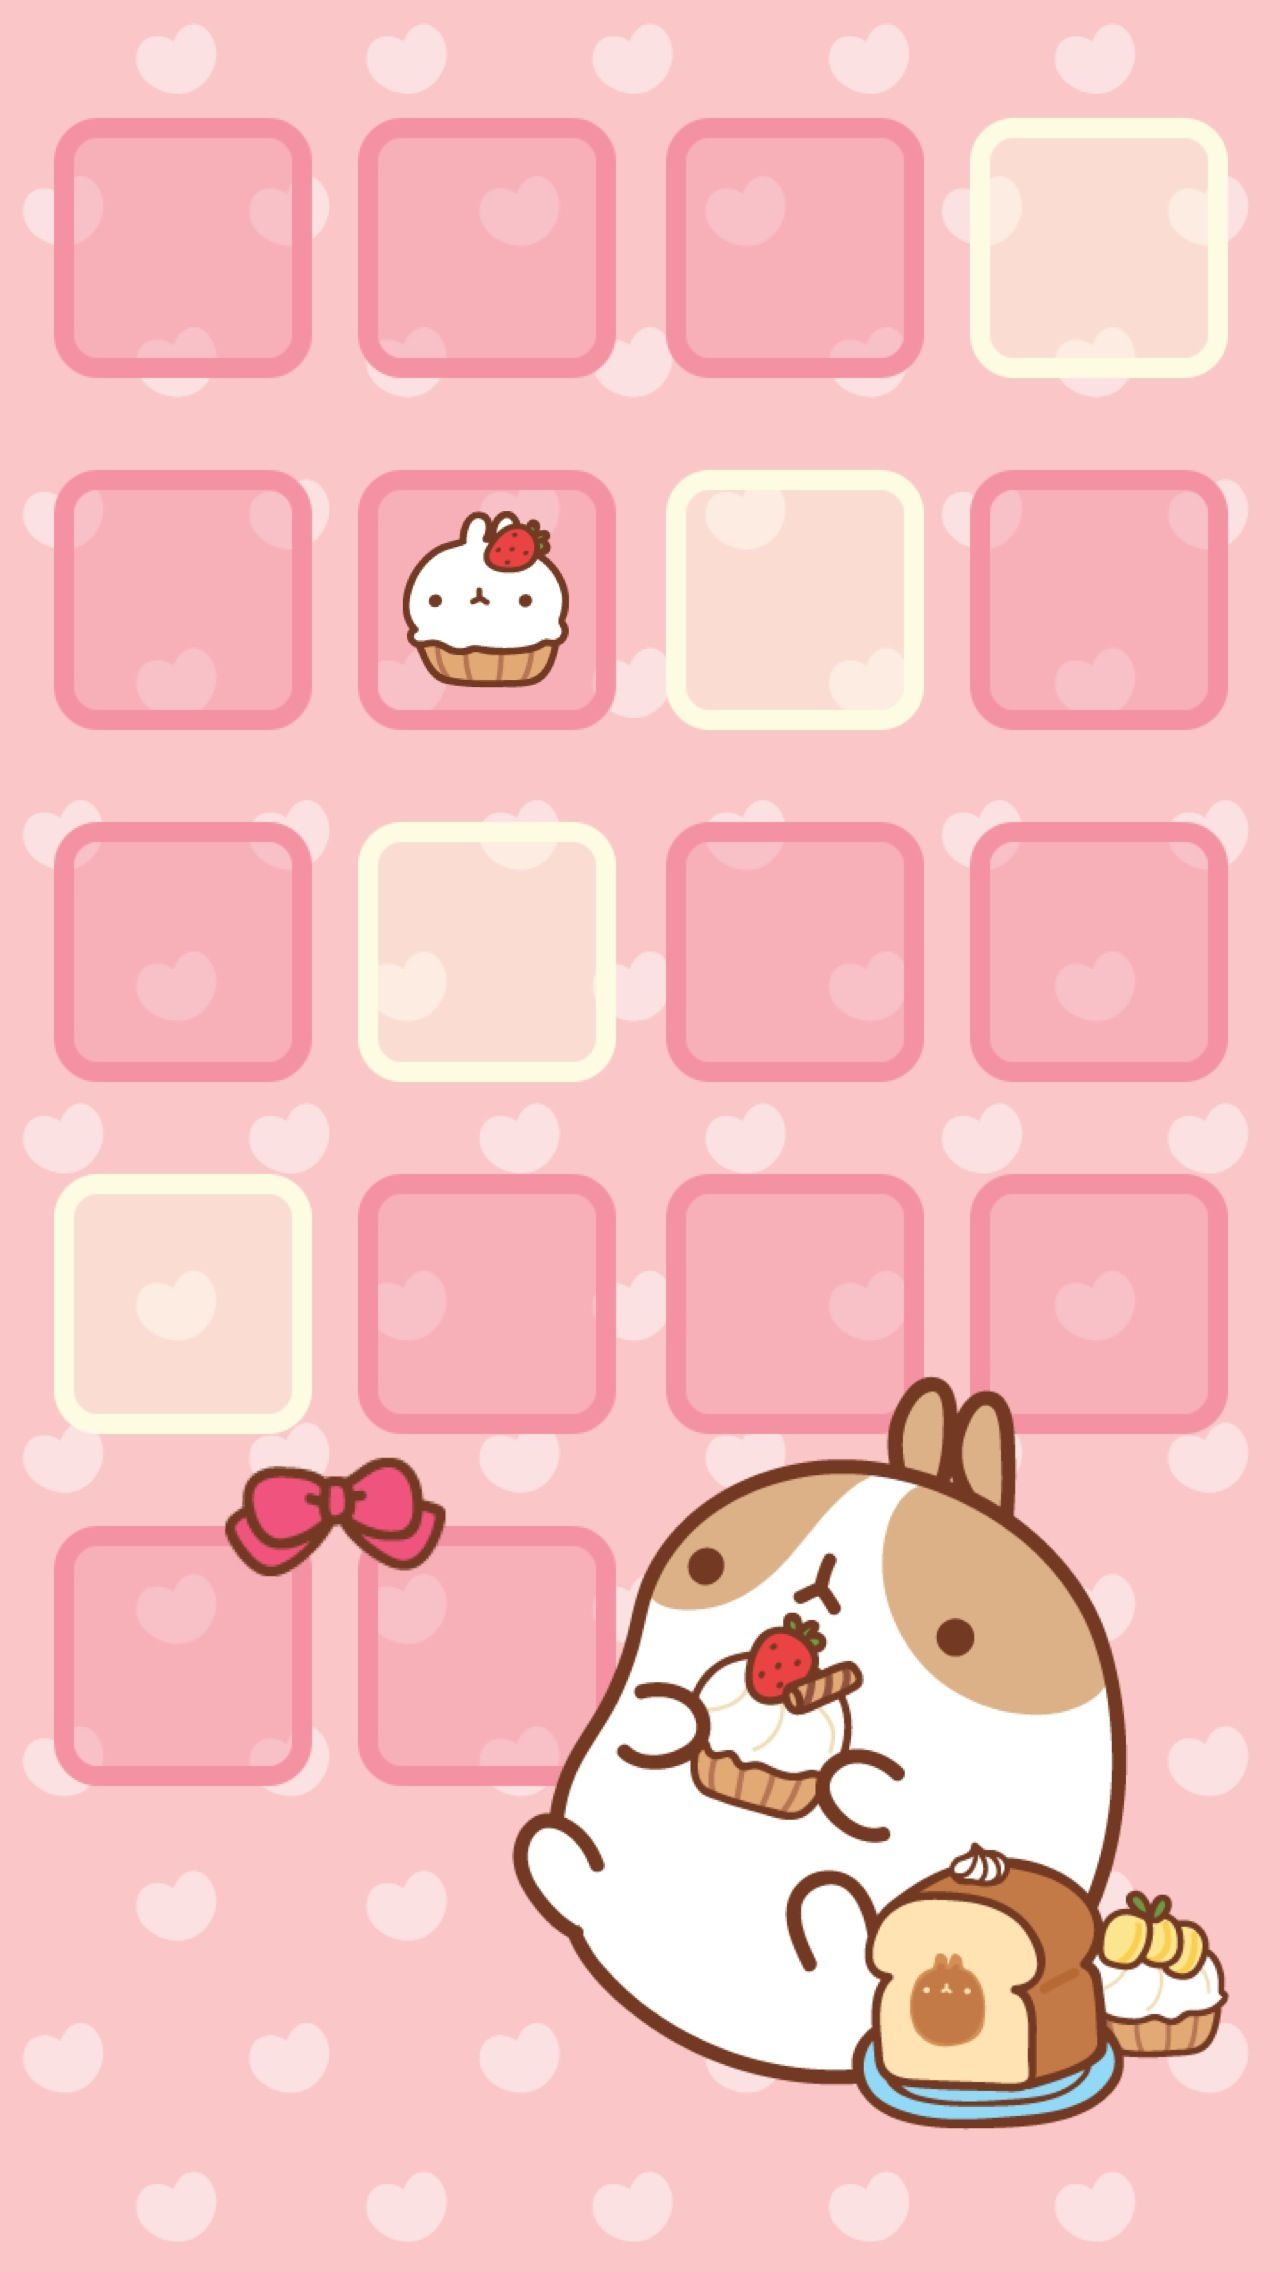 Iphone 5 wallpaper tumblr girly pink -  Cute Wallpapers For Iphone 5s Fli